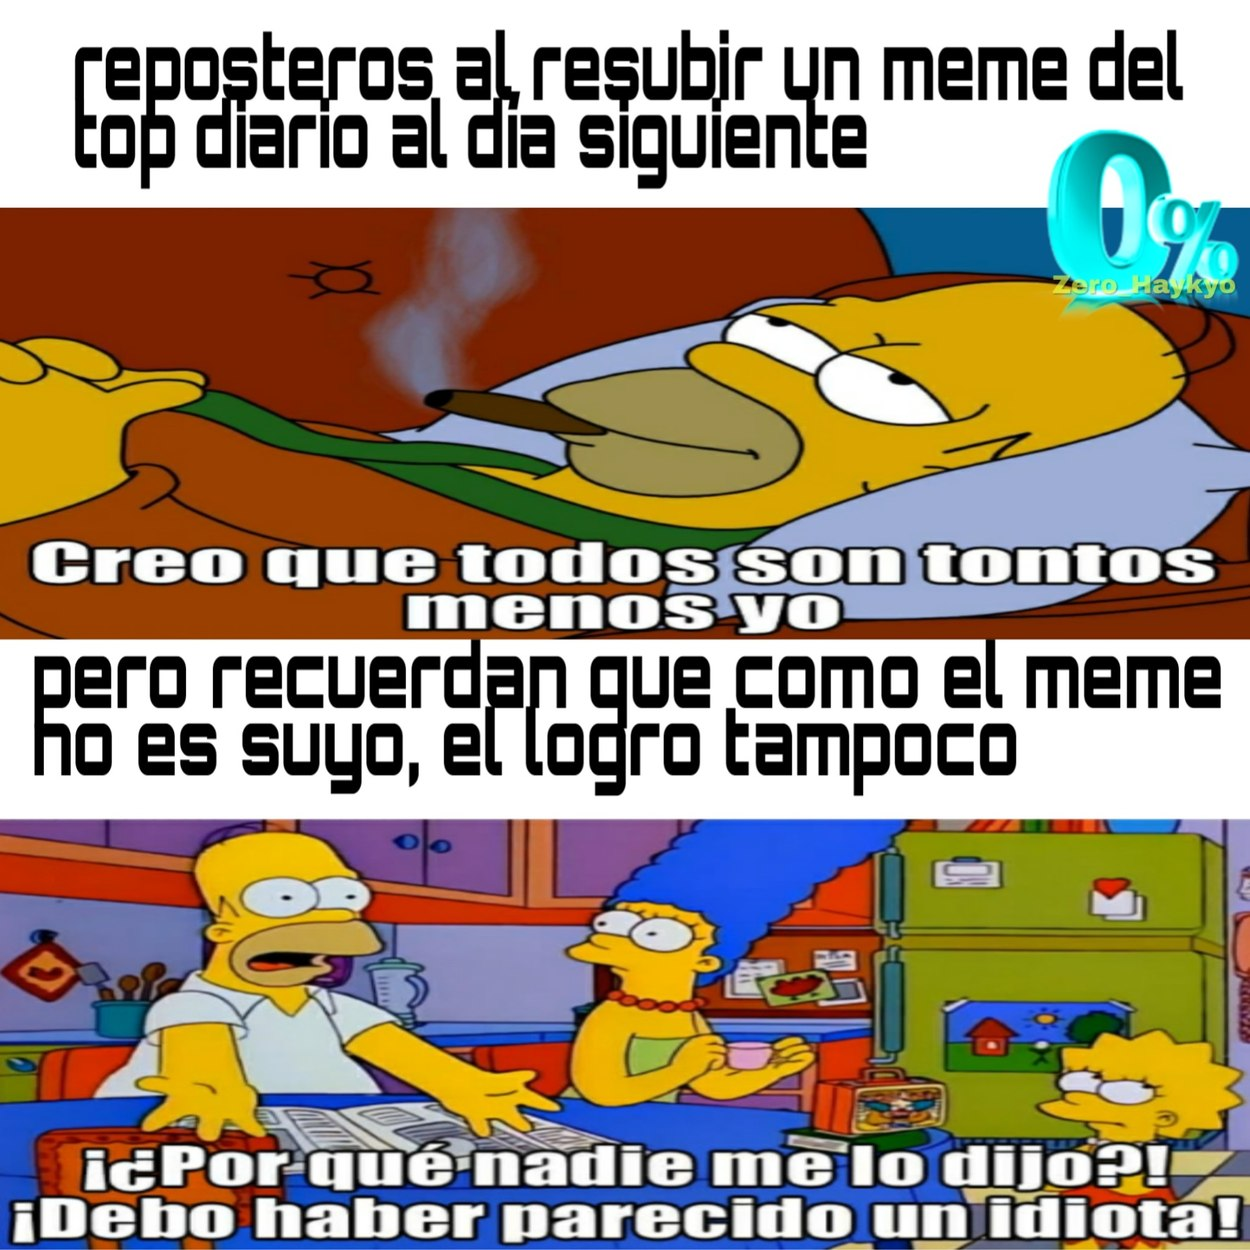 La comunidad de memedroid be like